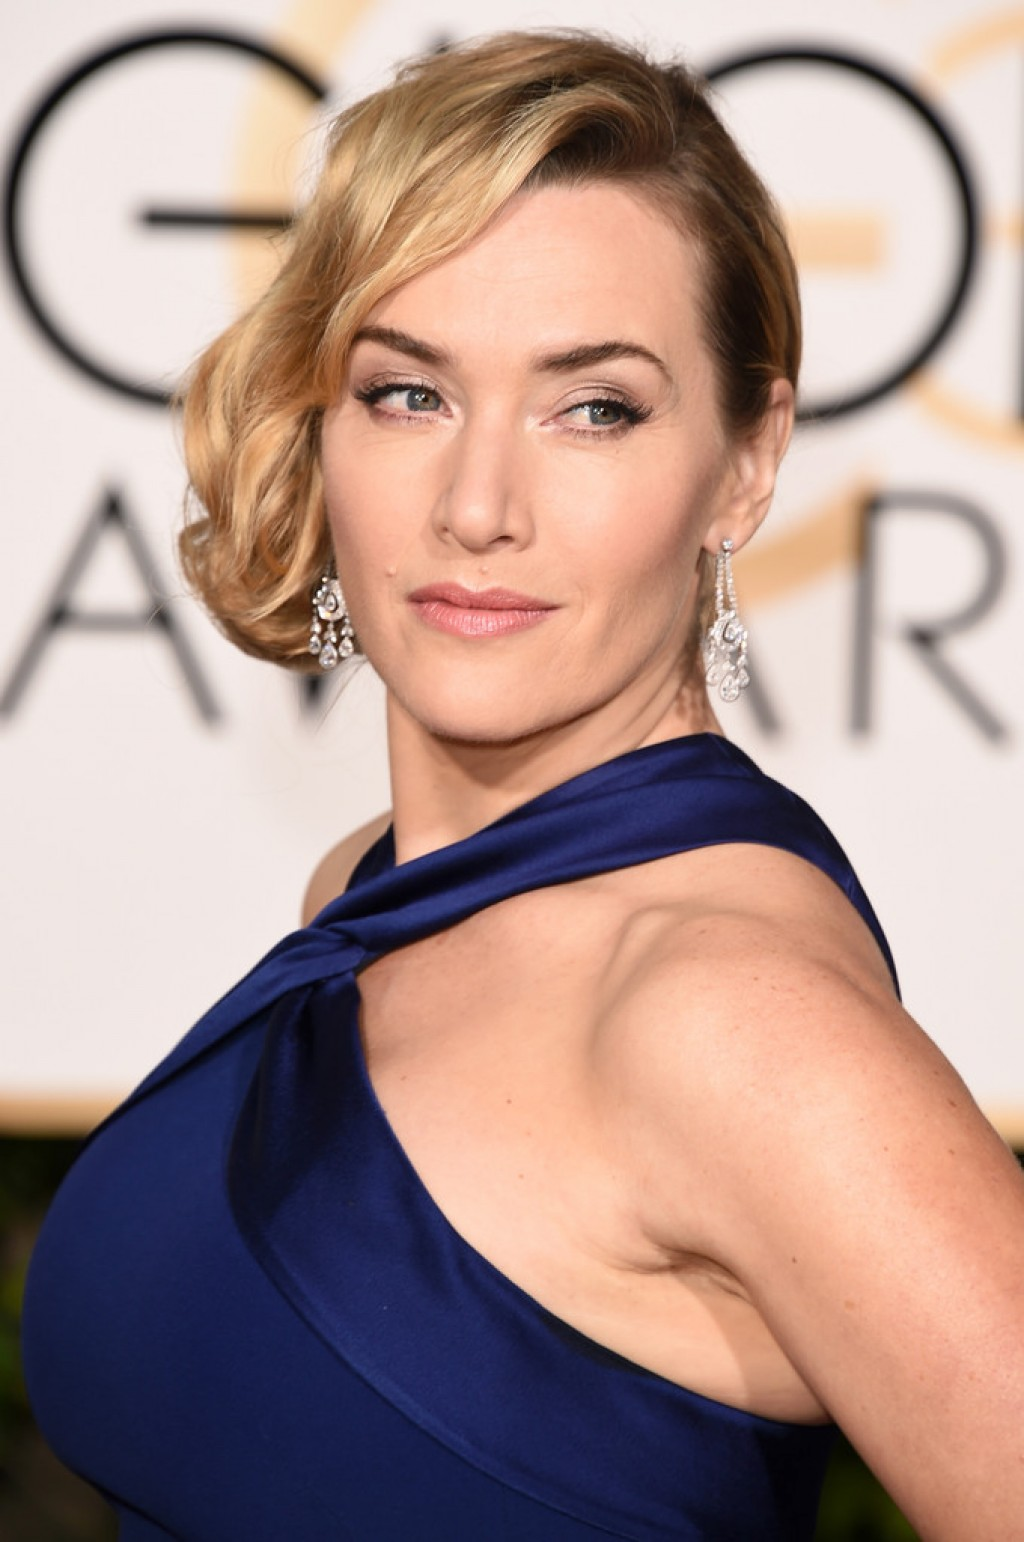 Actress Kate Winslet as well Celebrity Lists as well Sally Hawkins 605189 W also Eleanor Parker Sound Music Star Dies 91 Article 1 furthermore Christoph Waltz Gets Star Hollywood Walk Fame Joined Pals Quentin Tarantino Samuel L Jackson. on oscar best picture nominated films